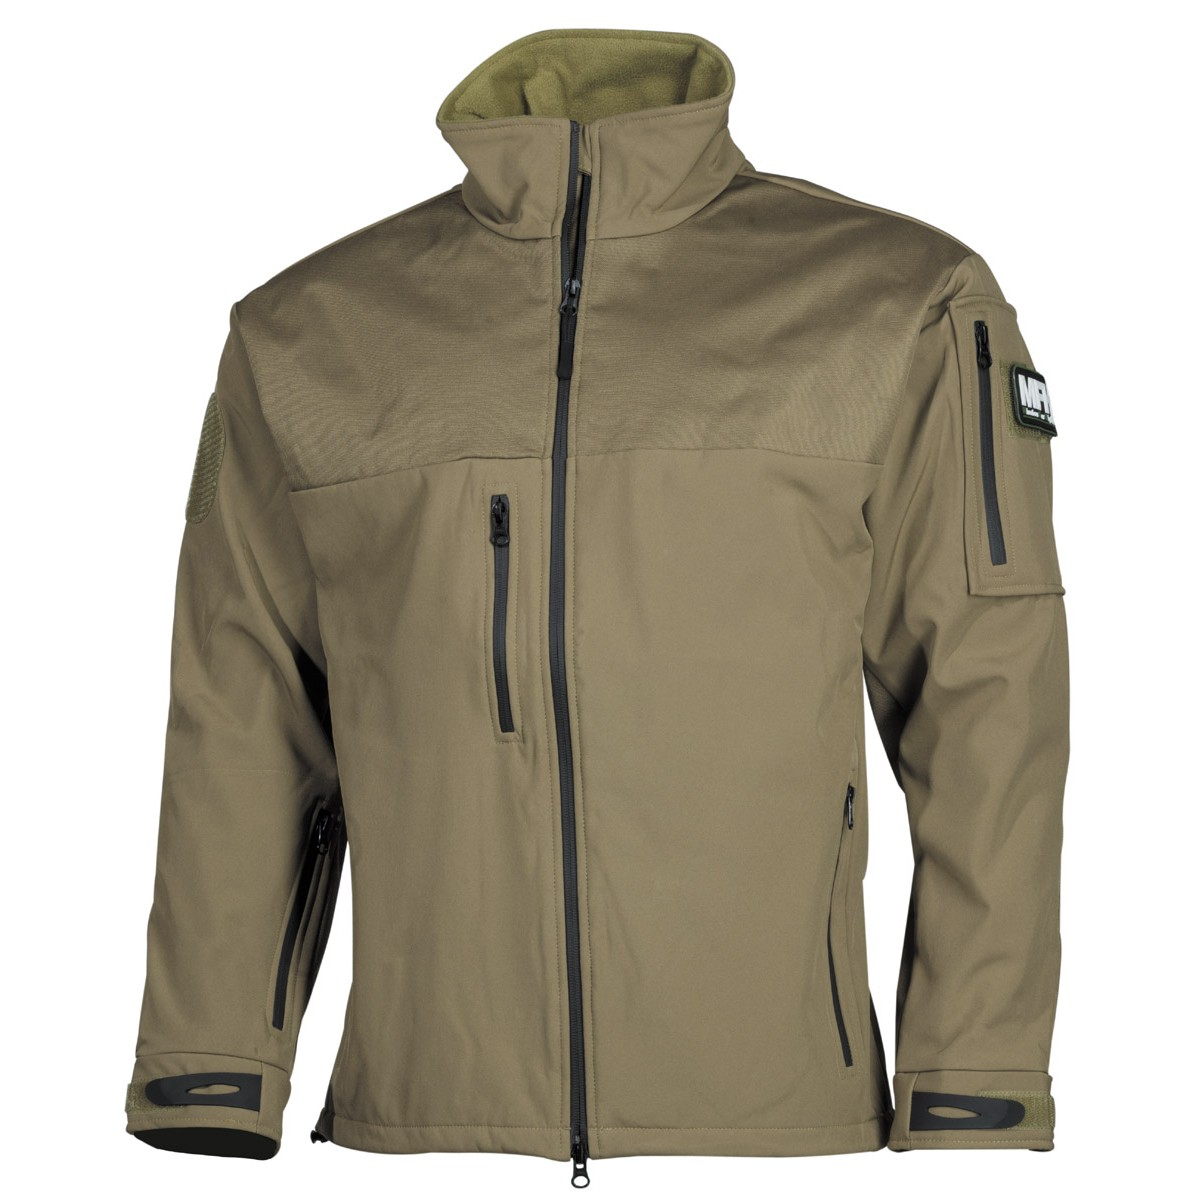 High Level Soft Shell Waterproof Jacket AUSTRALIA - Coyote